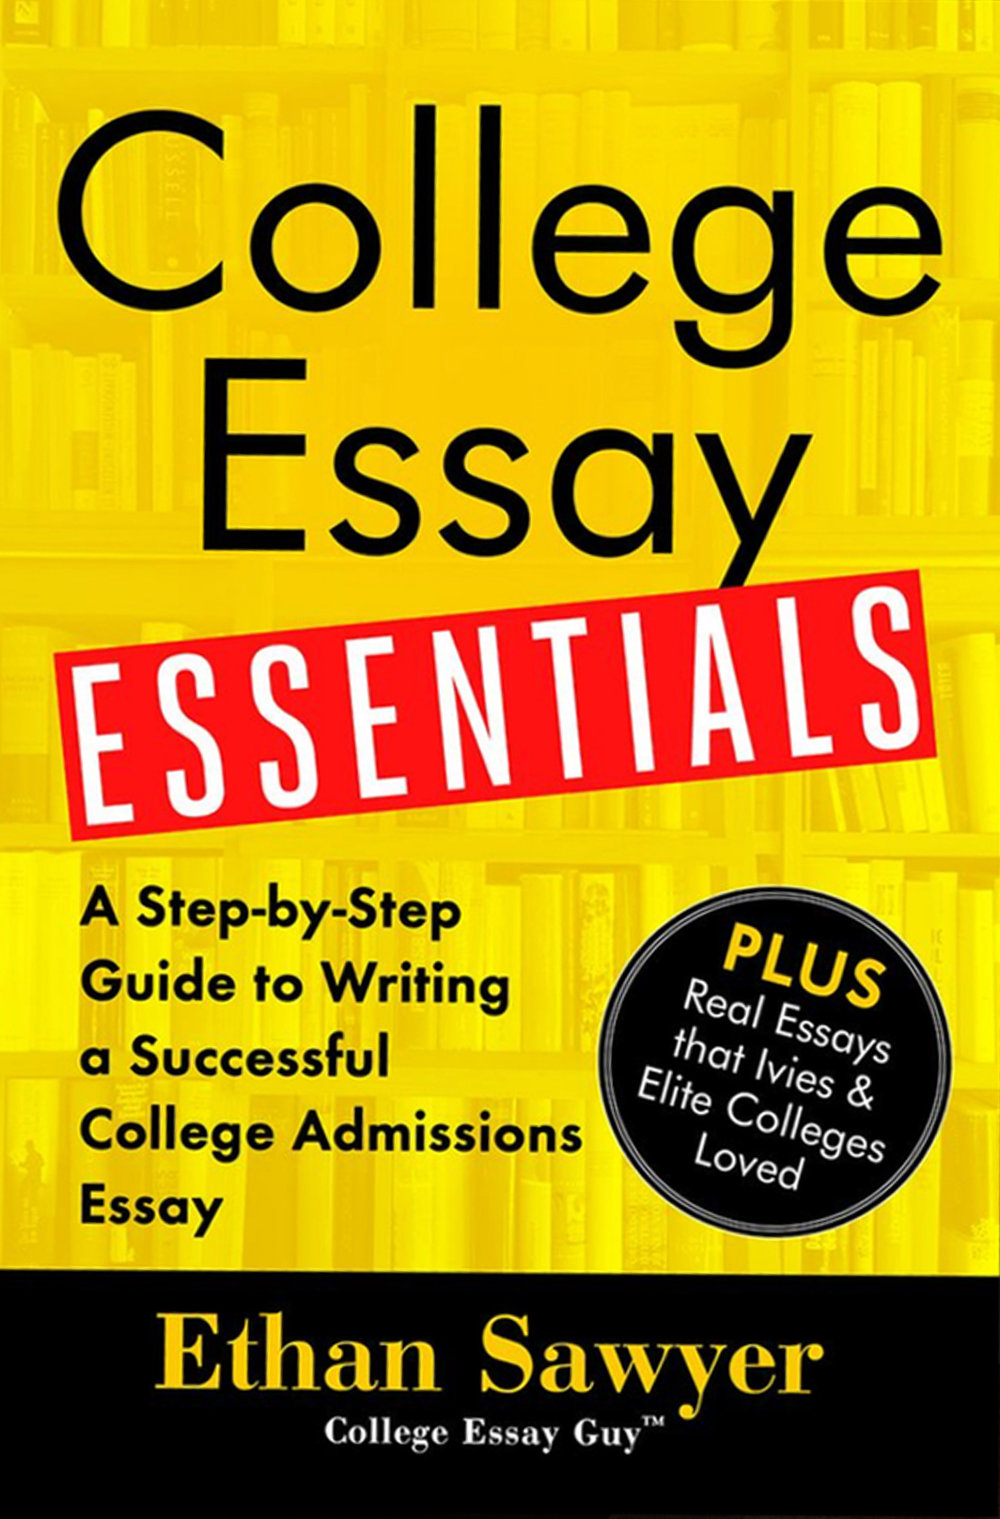 revising your essay in 5 steps college essay guy get inspired order the new book college essay essentials